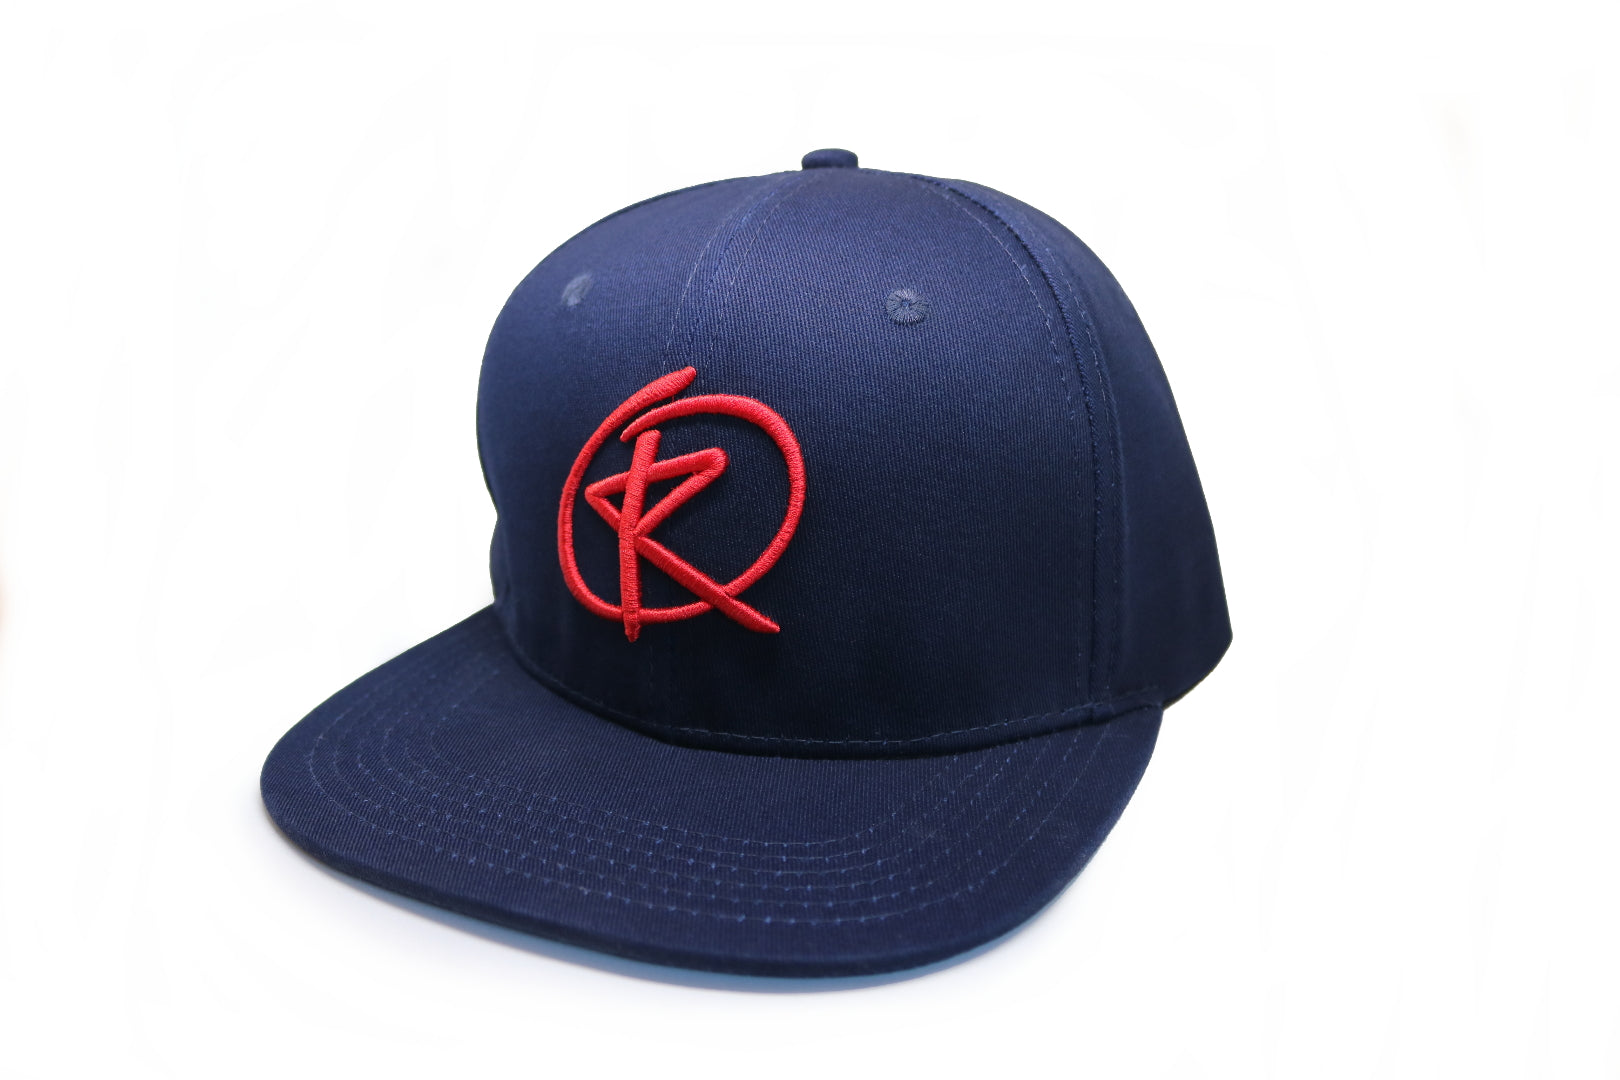 NAVY BLUE Snapback - Red Logo